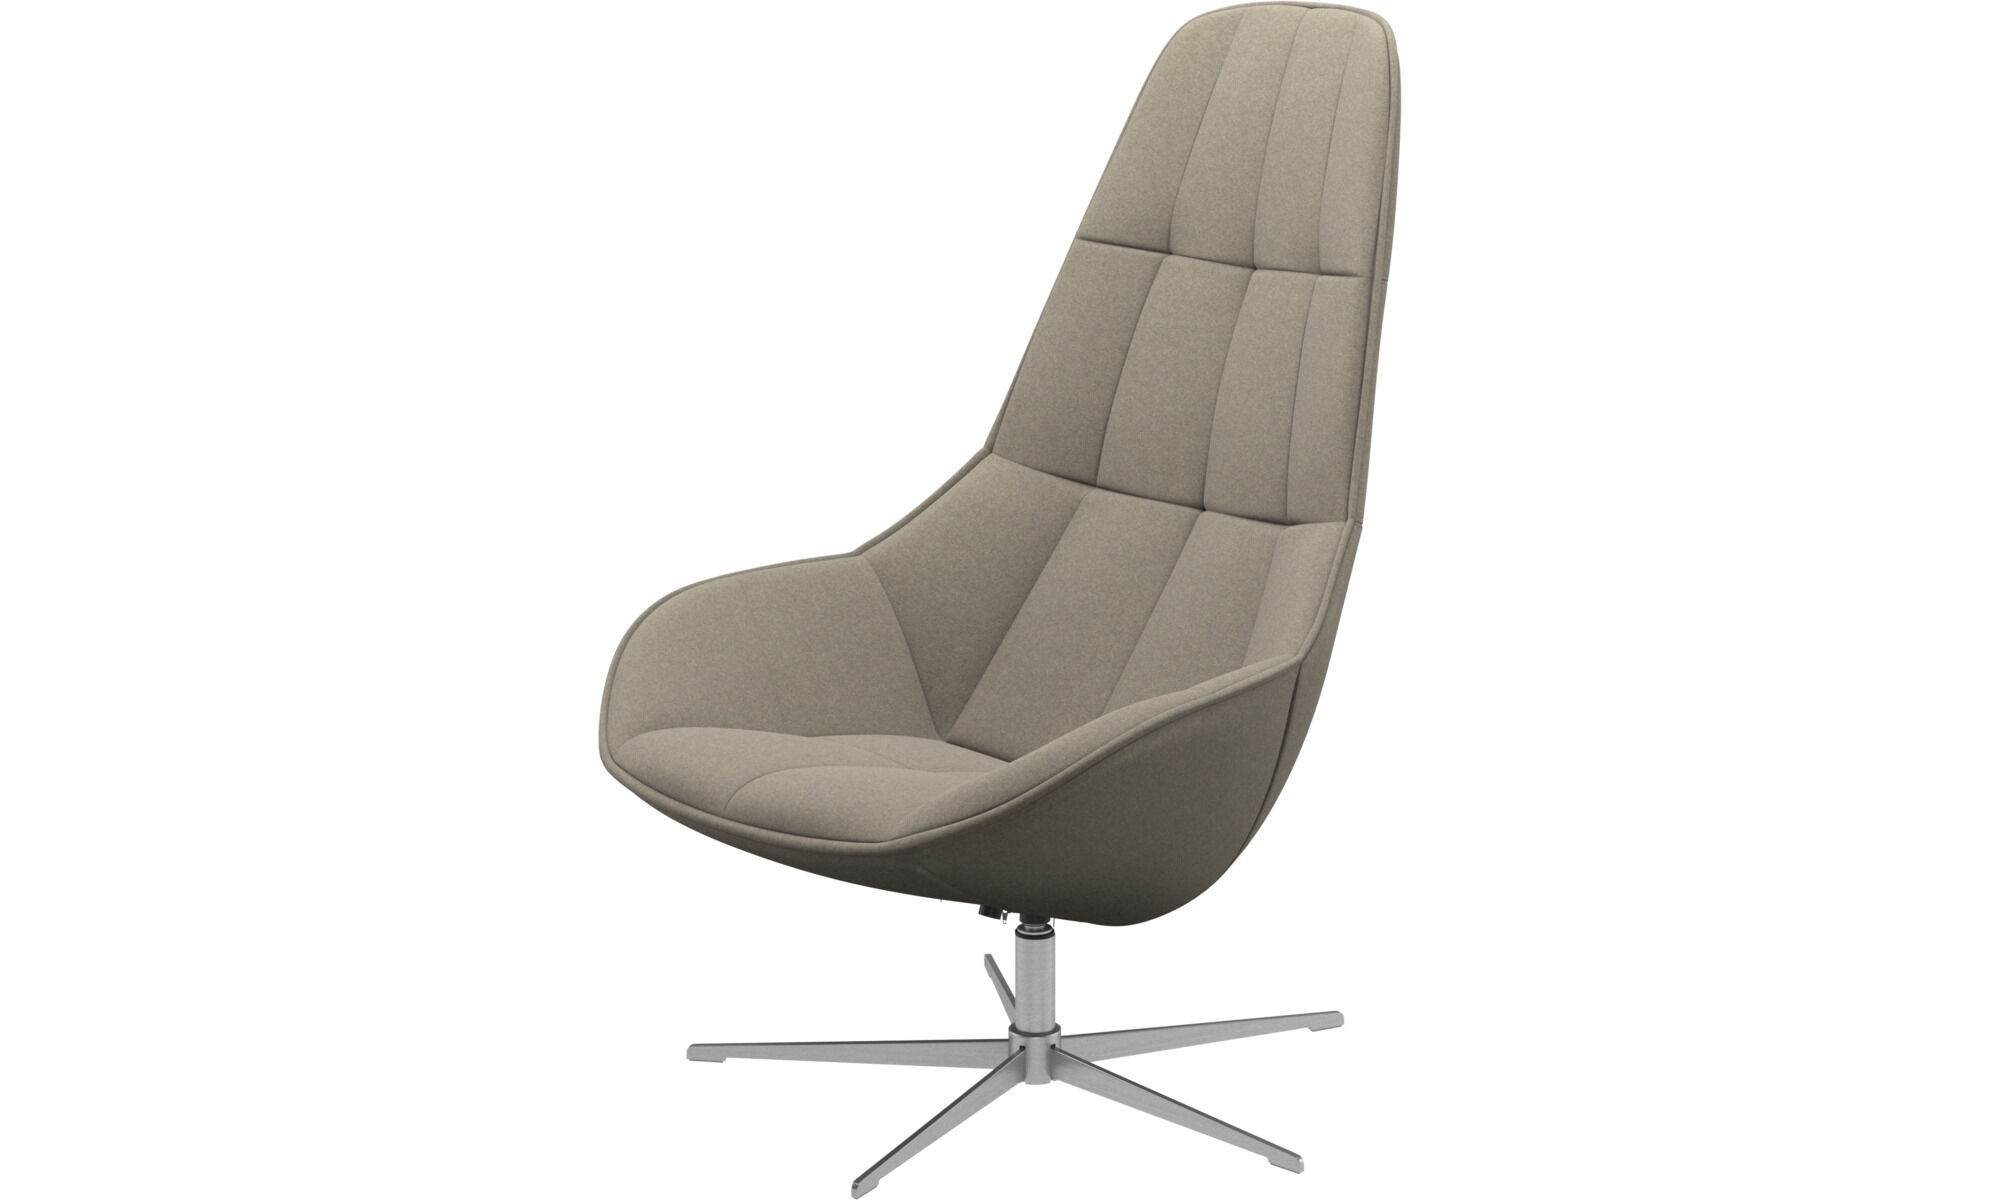 Genial Armchairs   Boston Chair With Swivel Function. Also Available With Tilt  Function   Beige ...